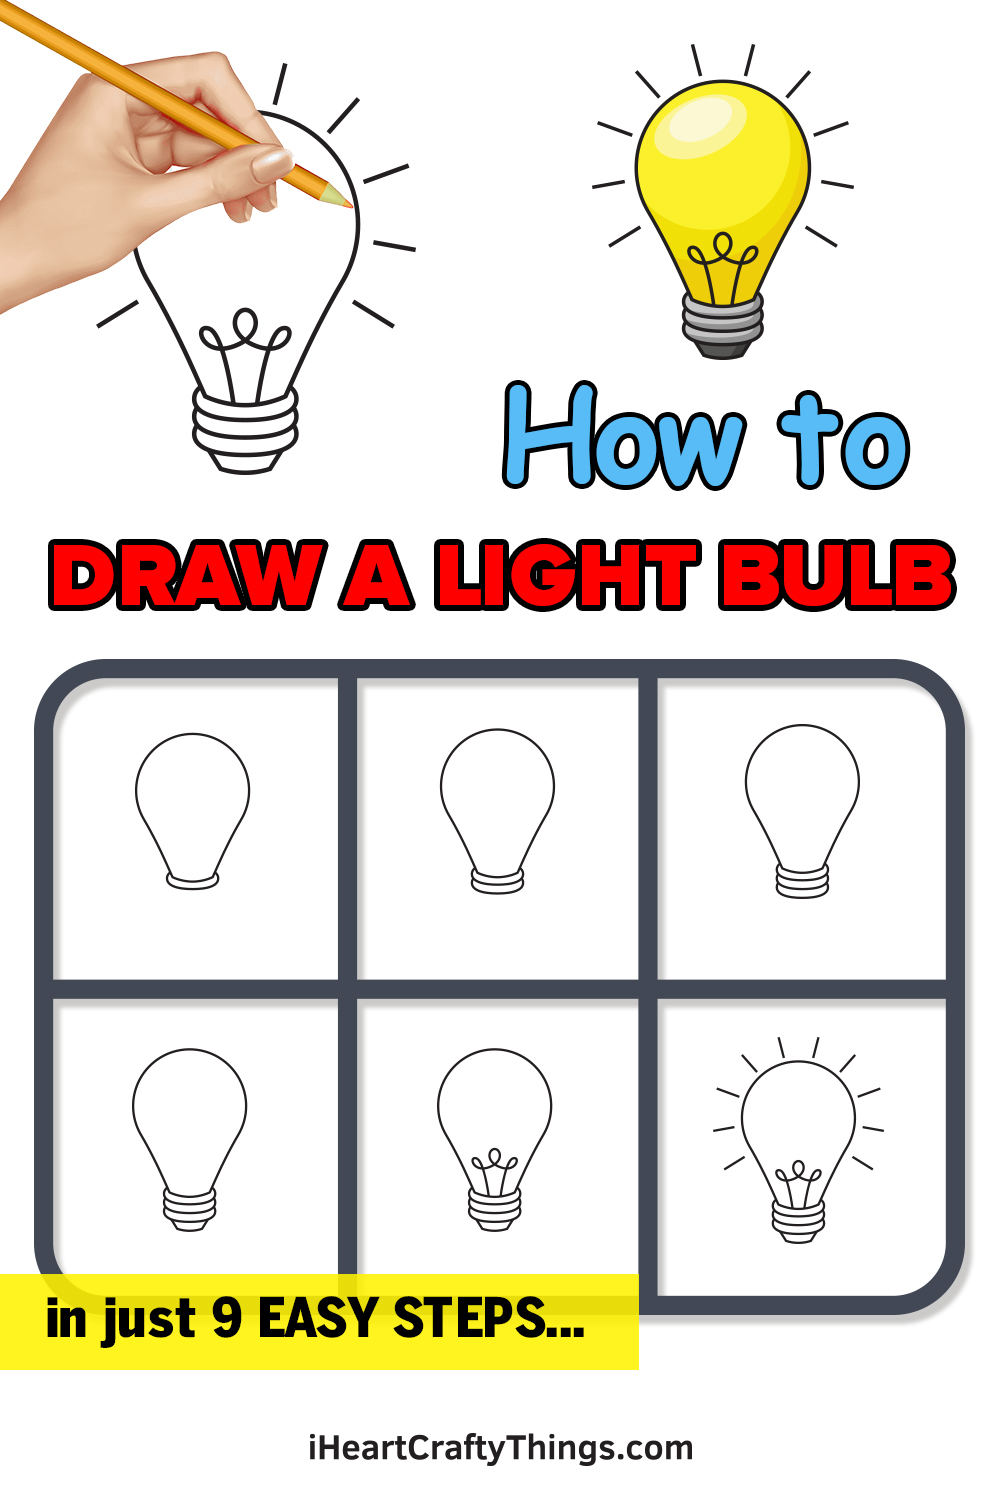 how to draw a light bulb in 9 easy steps